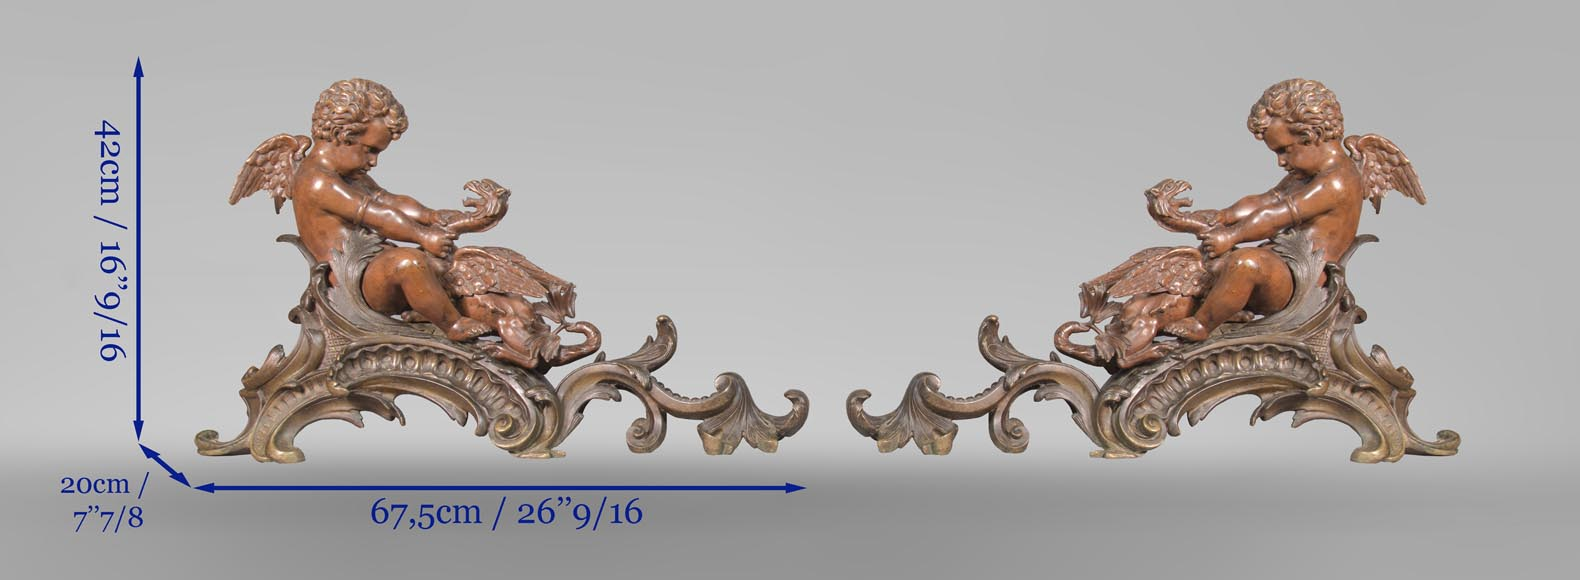 Pair of chenets, with putti and chimeras, made out of two patinas bronze-12